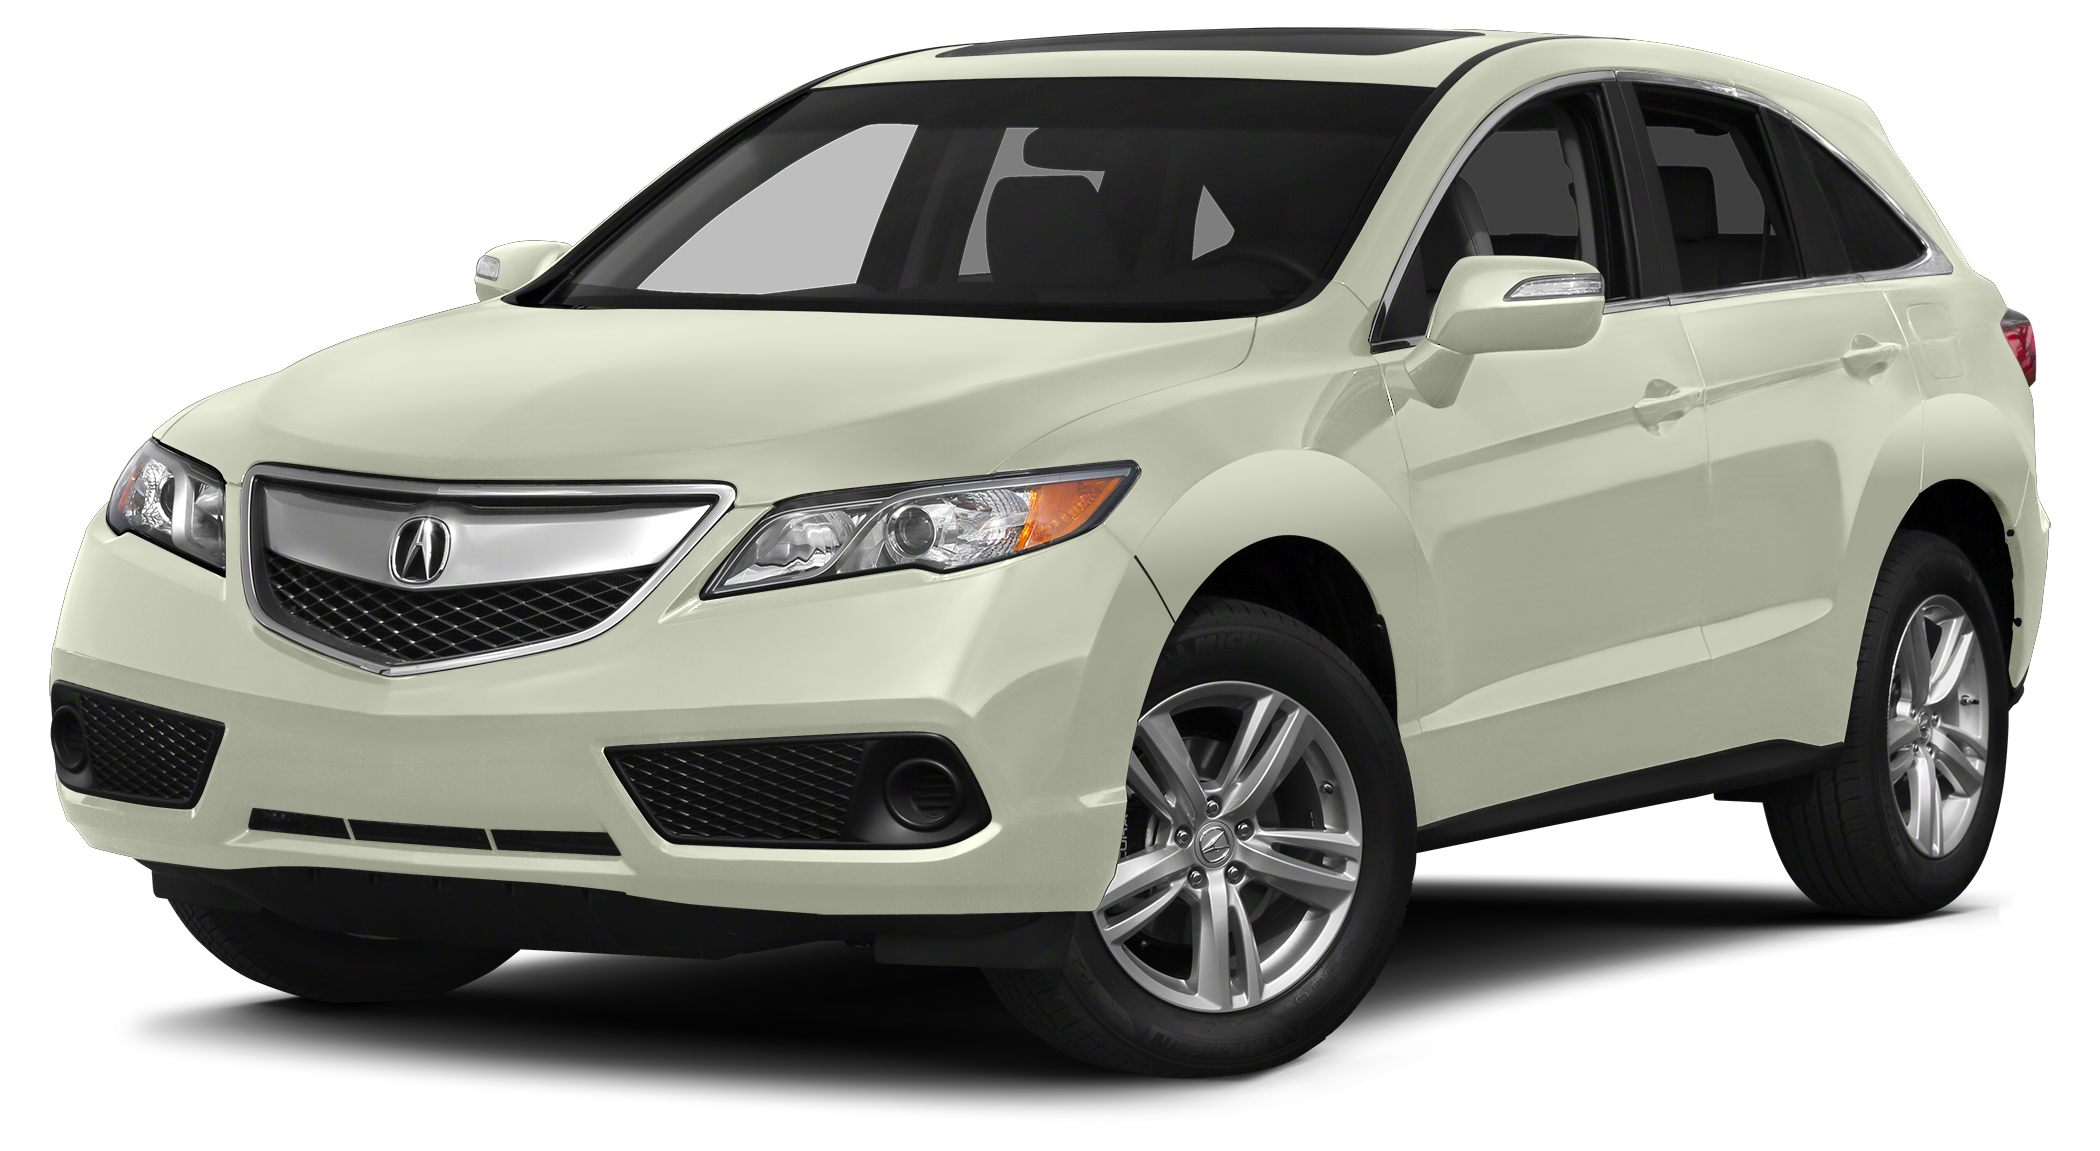 2014 Acura RDX Base Acura Certified - Clean Carfax - One Owner - Backup Camera - Bluetooth - Alloy